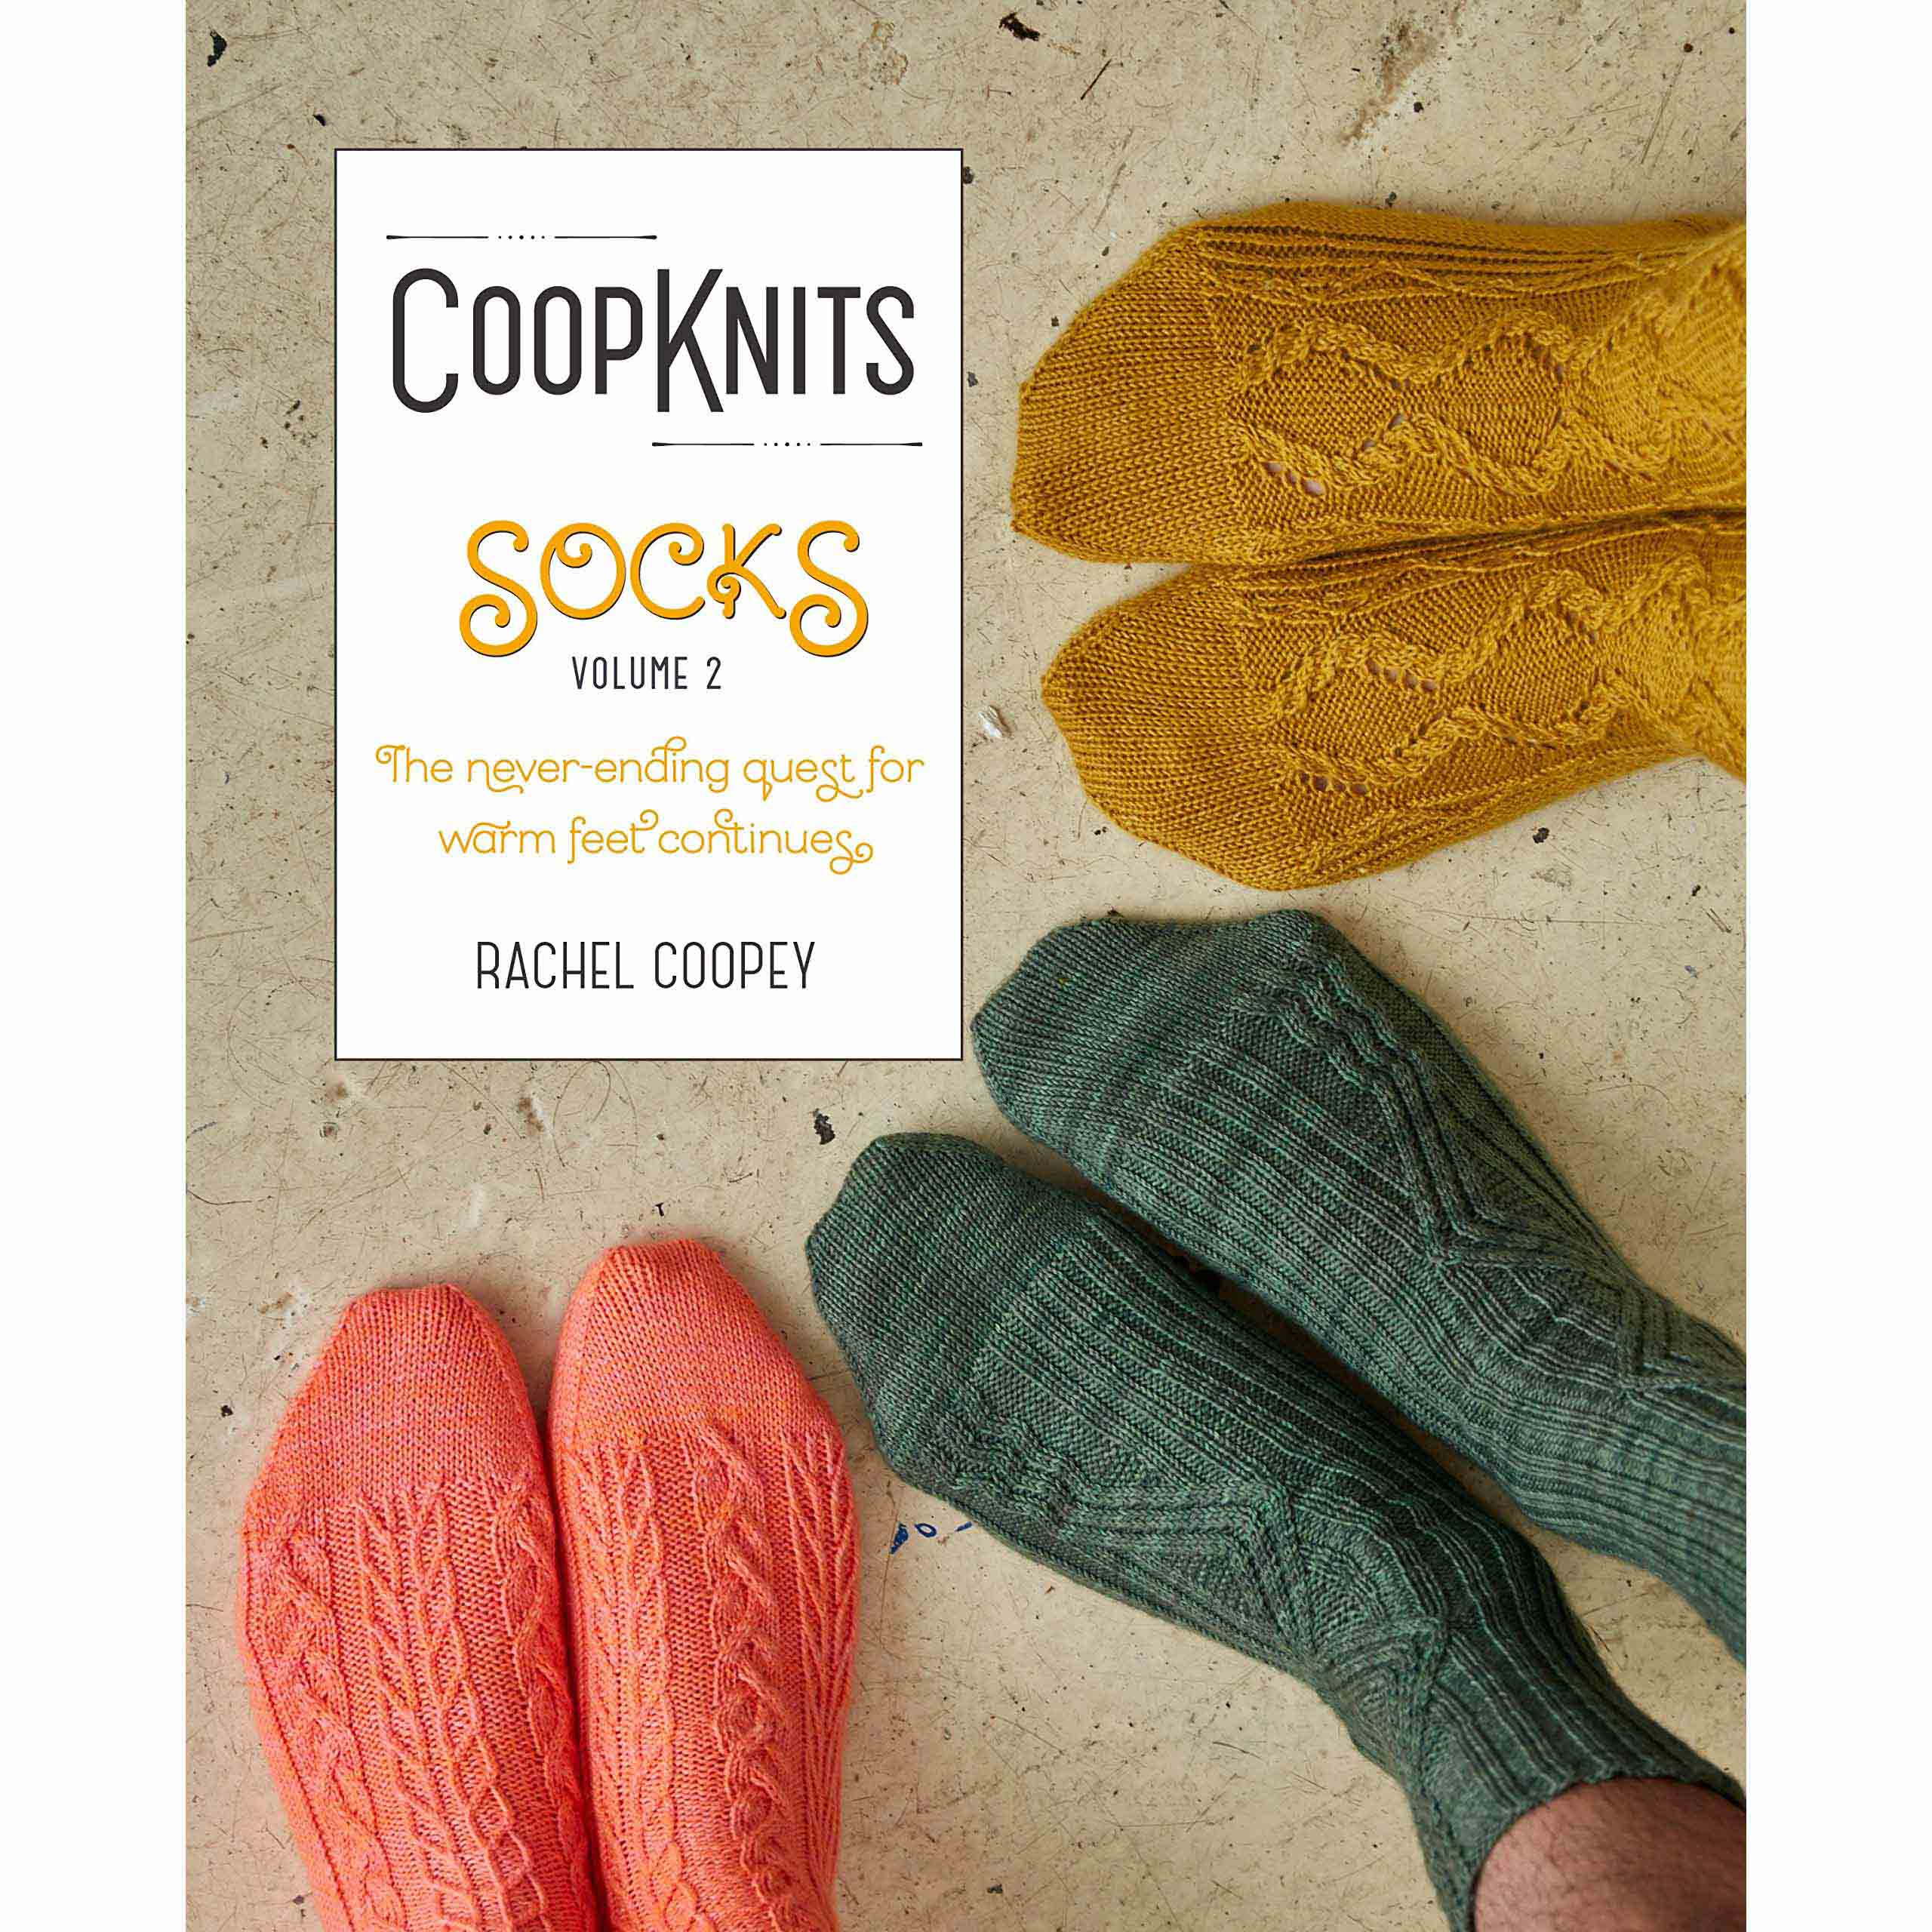 CoopKnits Socks Volume 2, by Rachel Coopey